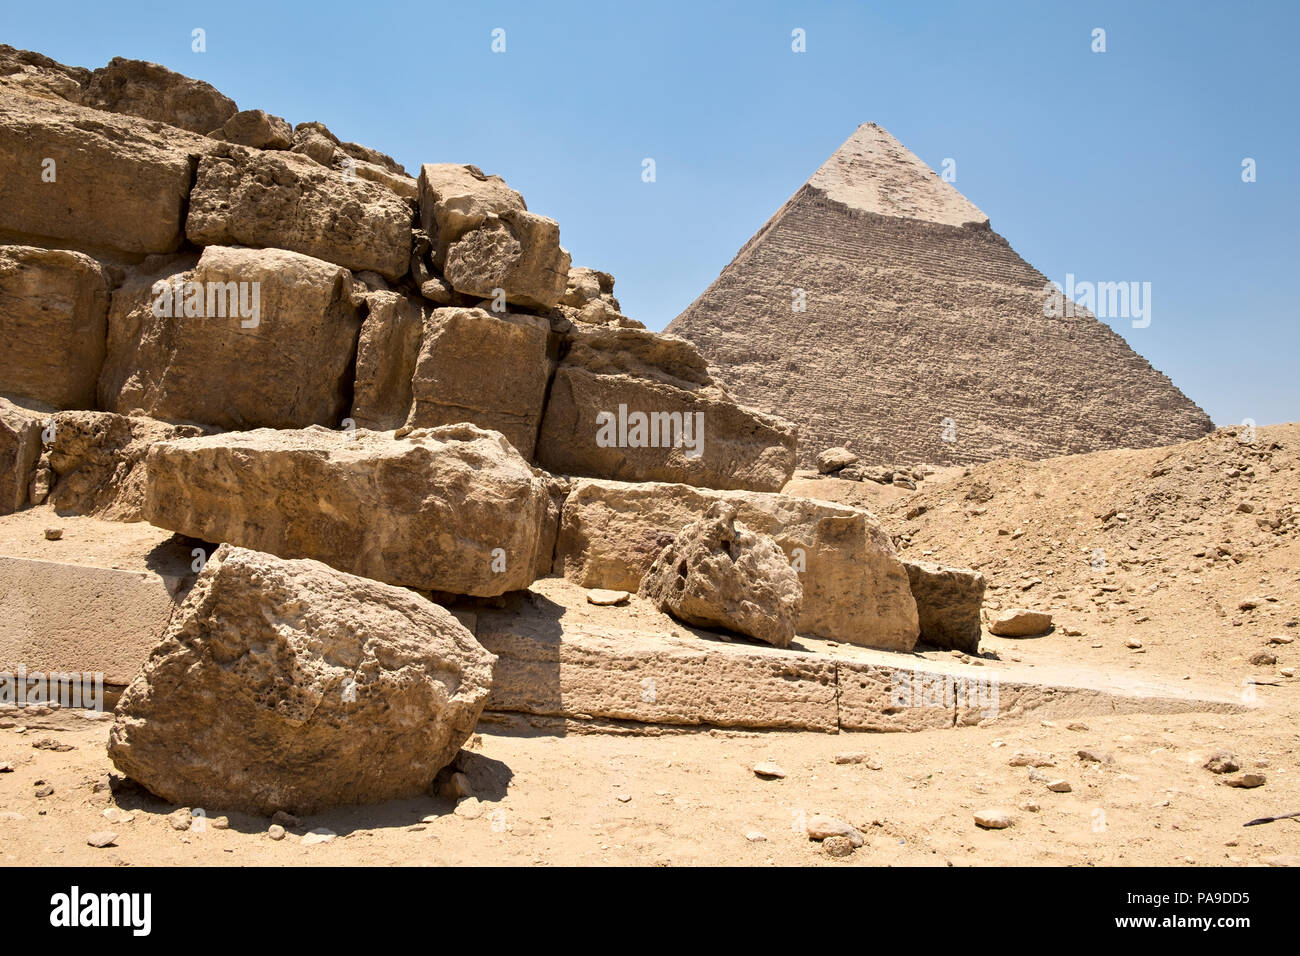 Pyramid of Khafre and ruins at the Western cemetery, Giza, Egypt - Stock Image